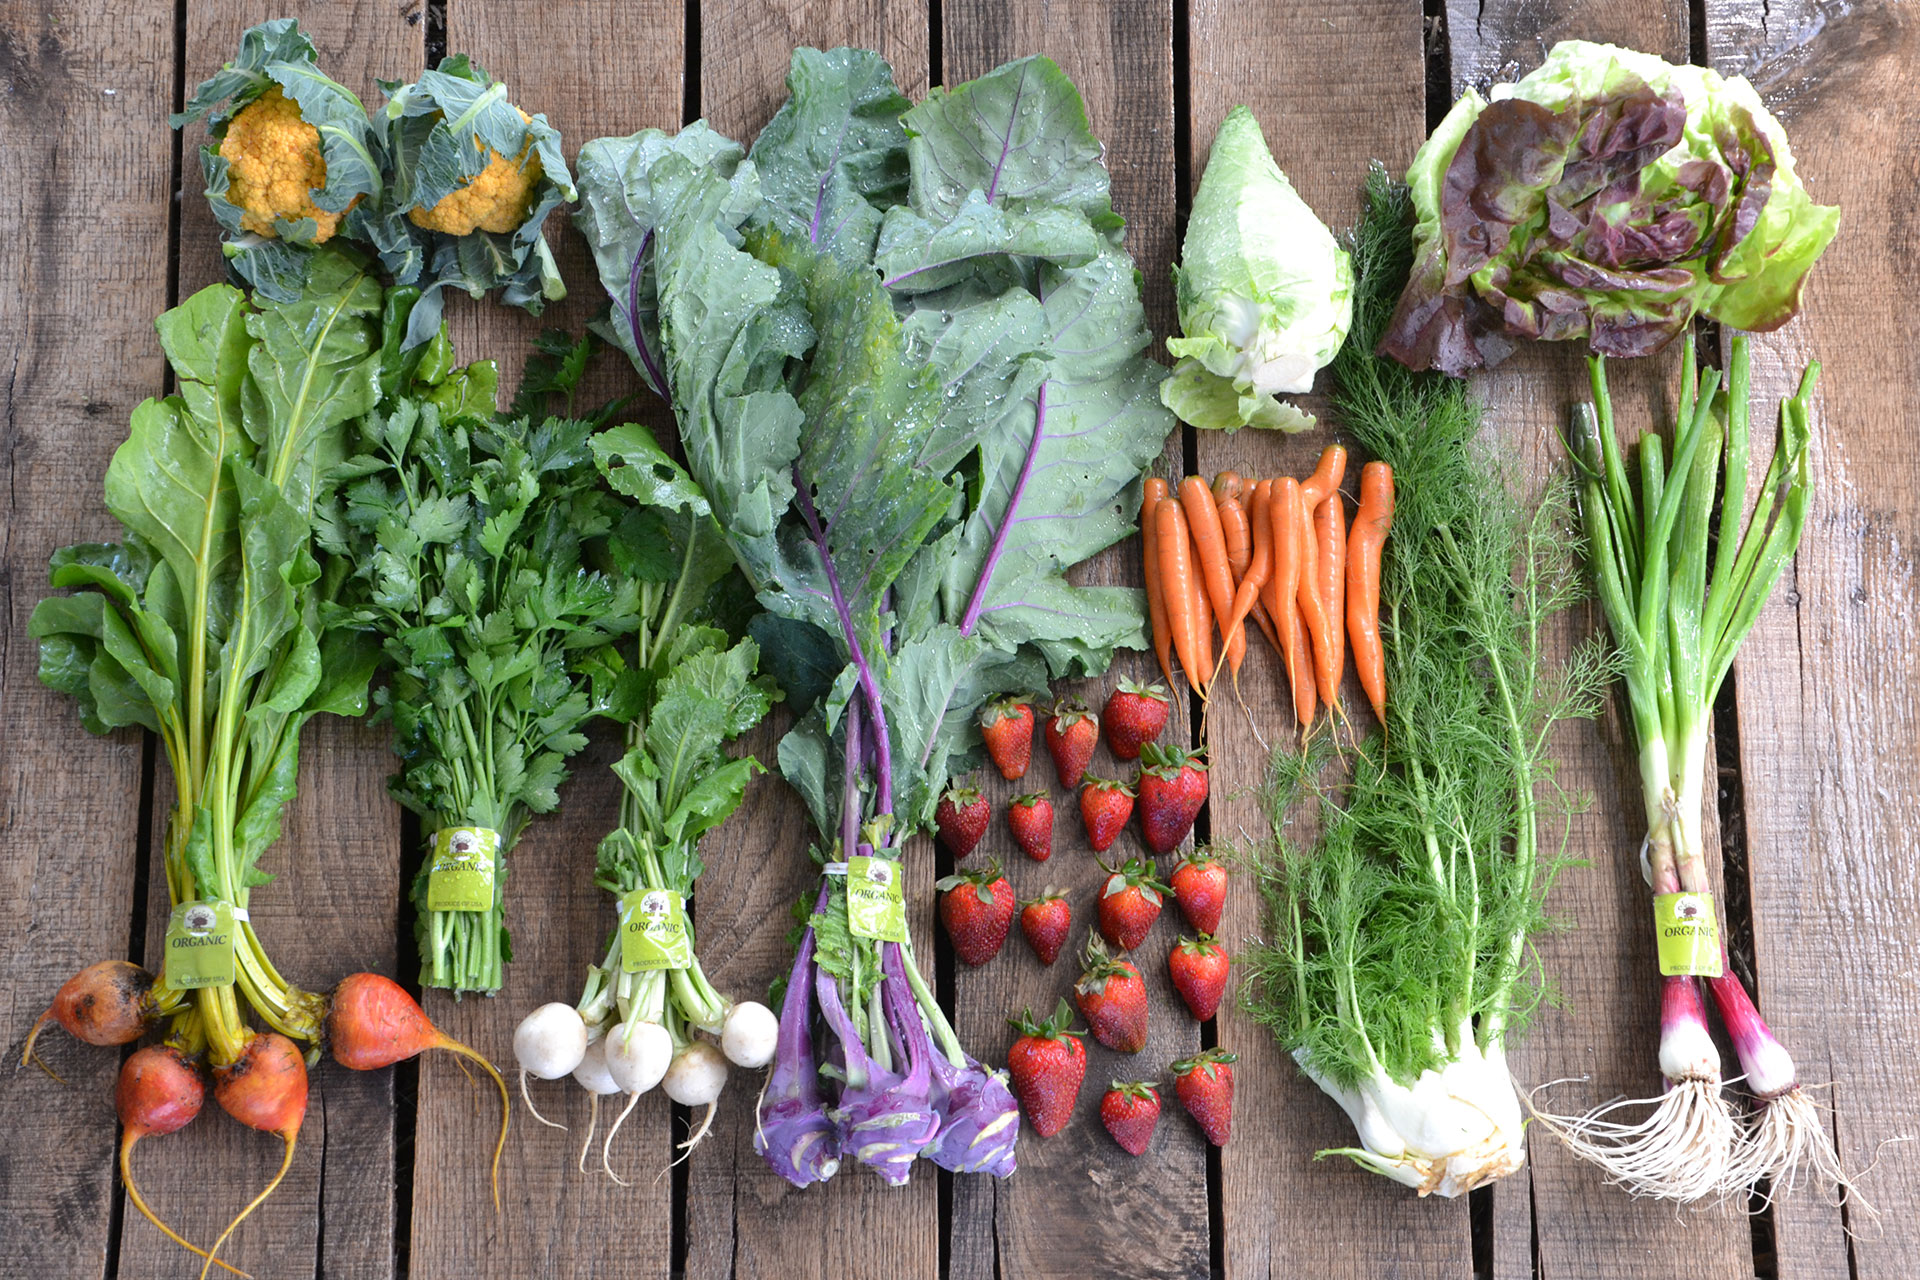 Local CSA Farmers Struggle to Compete Against Meal Kit Services